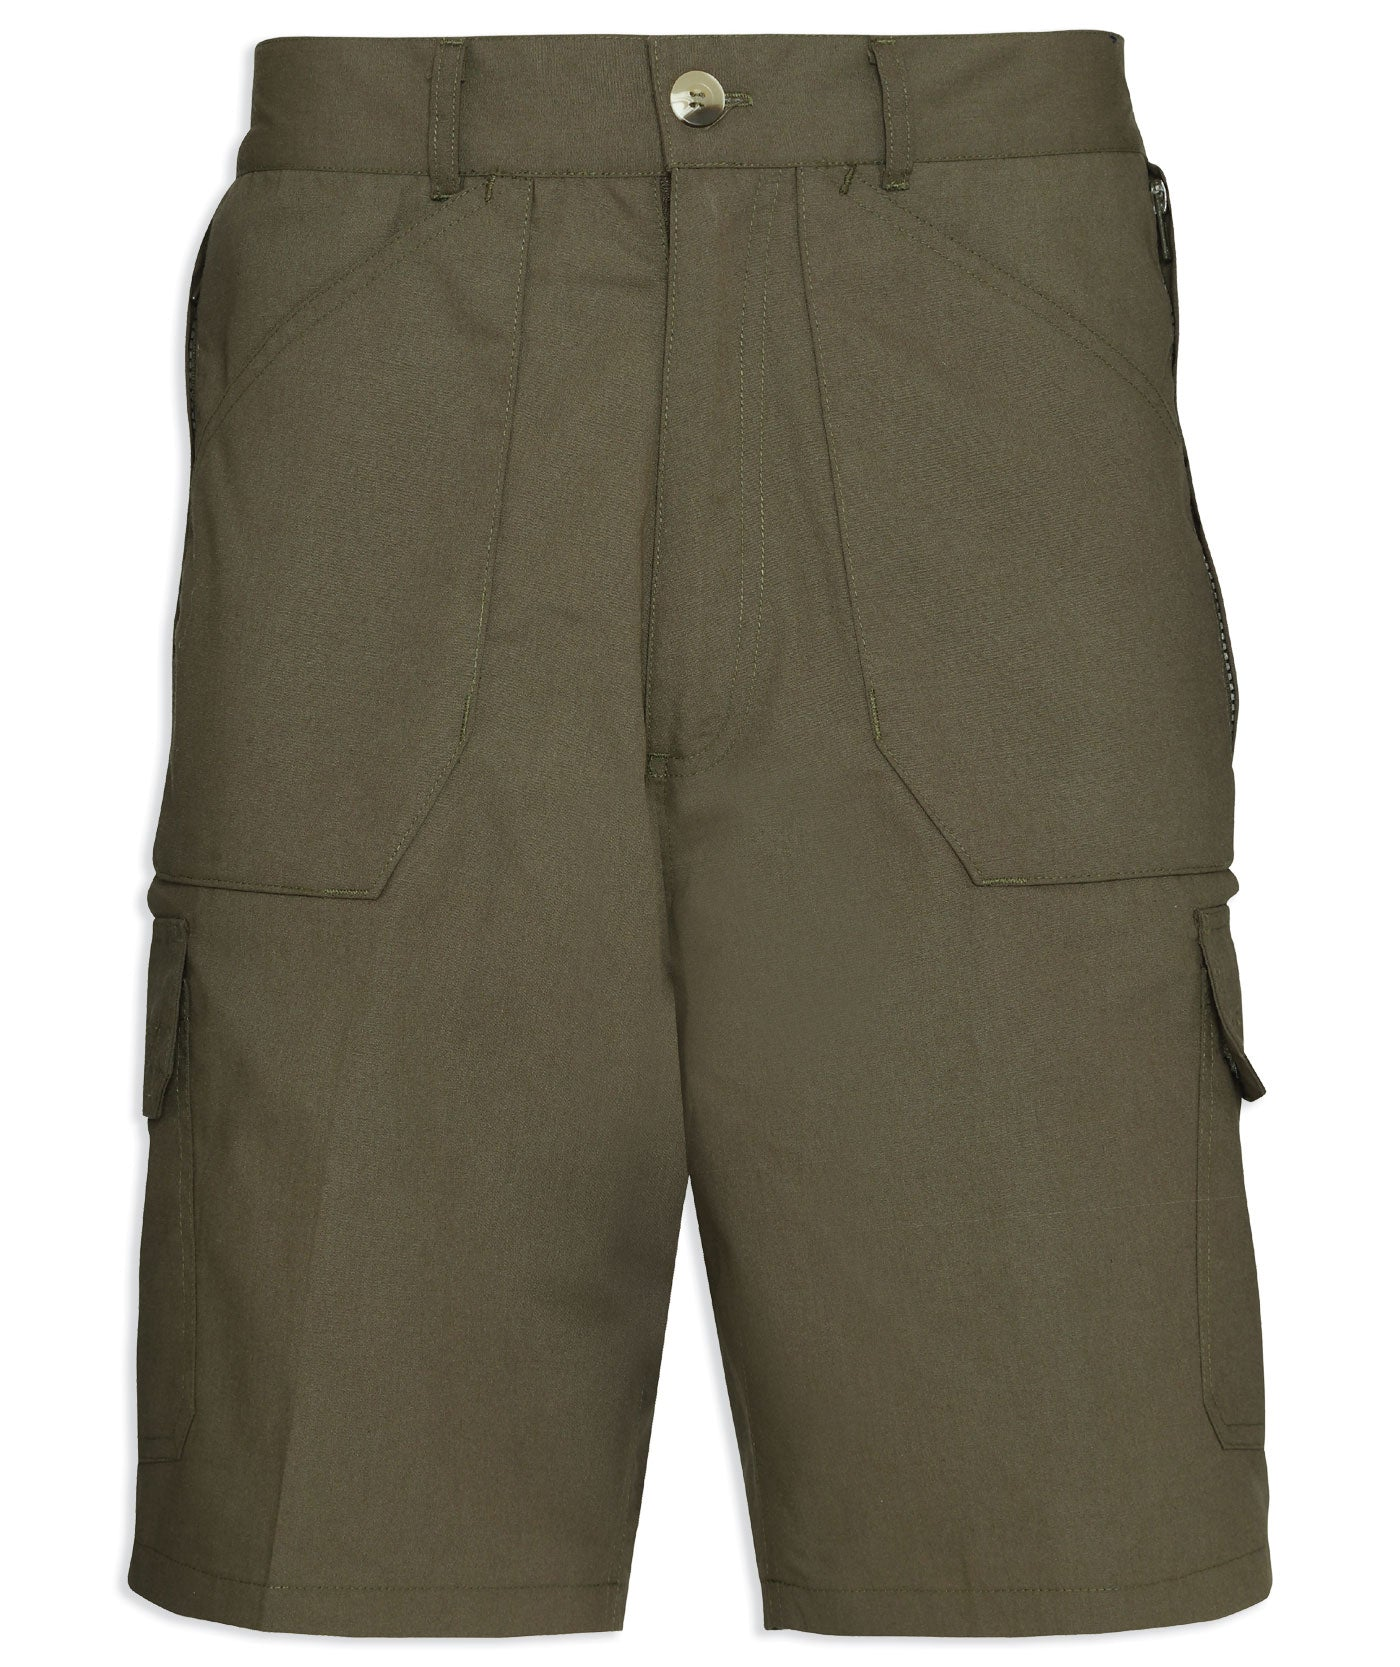 champion action short in olive green with lots of pockets